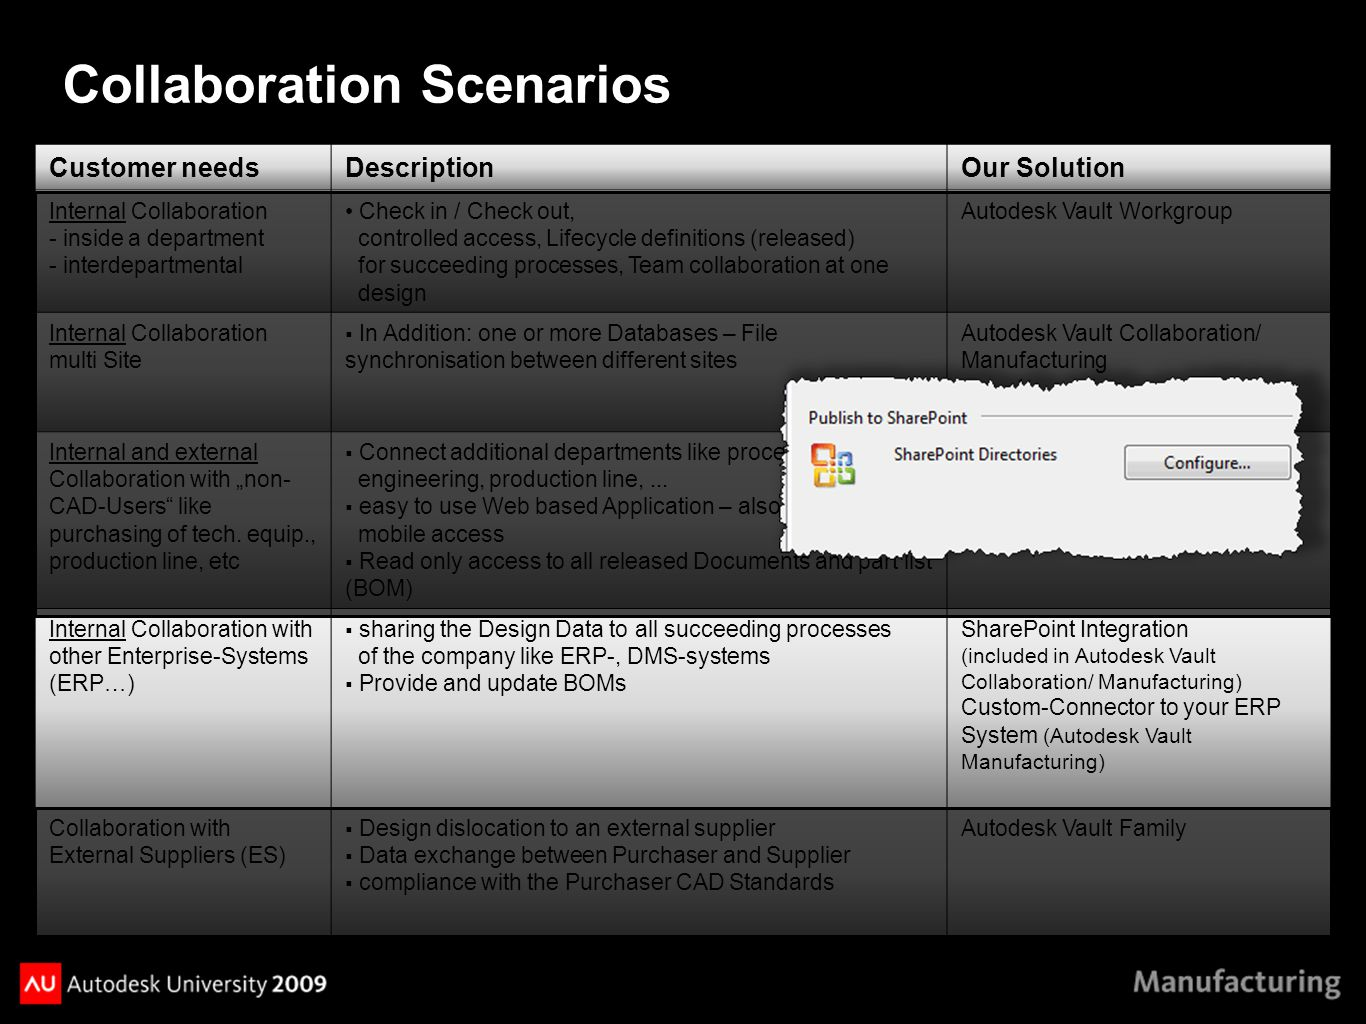 "Customer needsDescriptionOur Solution Internal Collaboration - inside a department - interdepartmental Check in / Check out, controlled access, Lifecycle definitions (released) for succeeding processes, Team collaboration at one design Autodesk Vault Workgroup Internal Collaboration multi Site  In Addition: one or more Databases – File synchronisation between different sites Autodesk Vault Collaboration/ Manufacturing Internal and external Collaboration with ""non- CAD-Users like purchasing of tech."